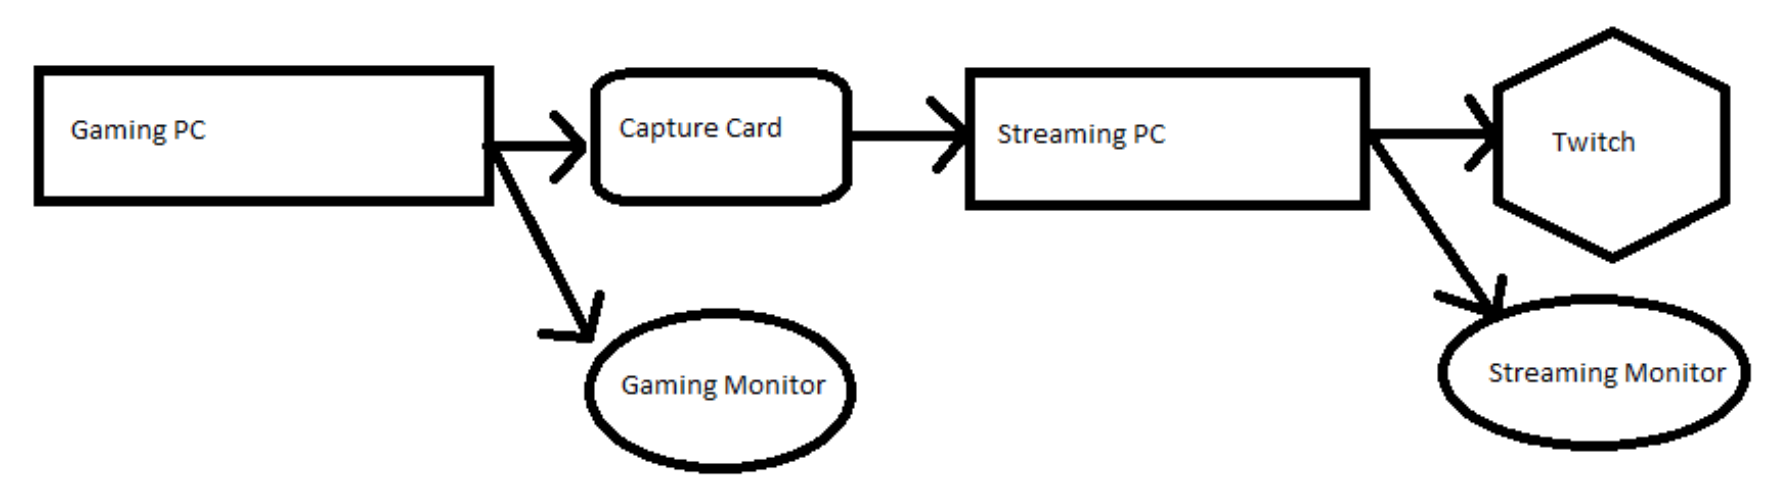 Building A Pc For Streaming To Twitch Diagram Image Icons